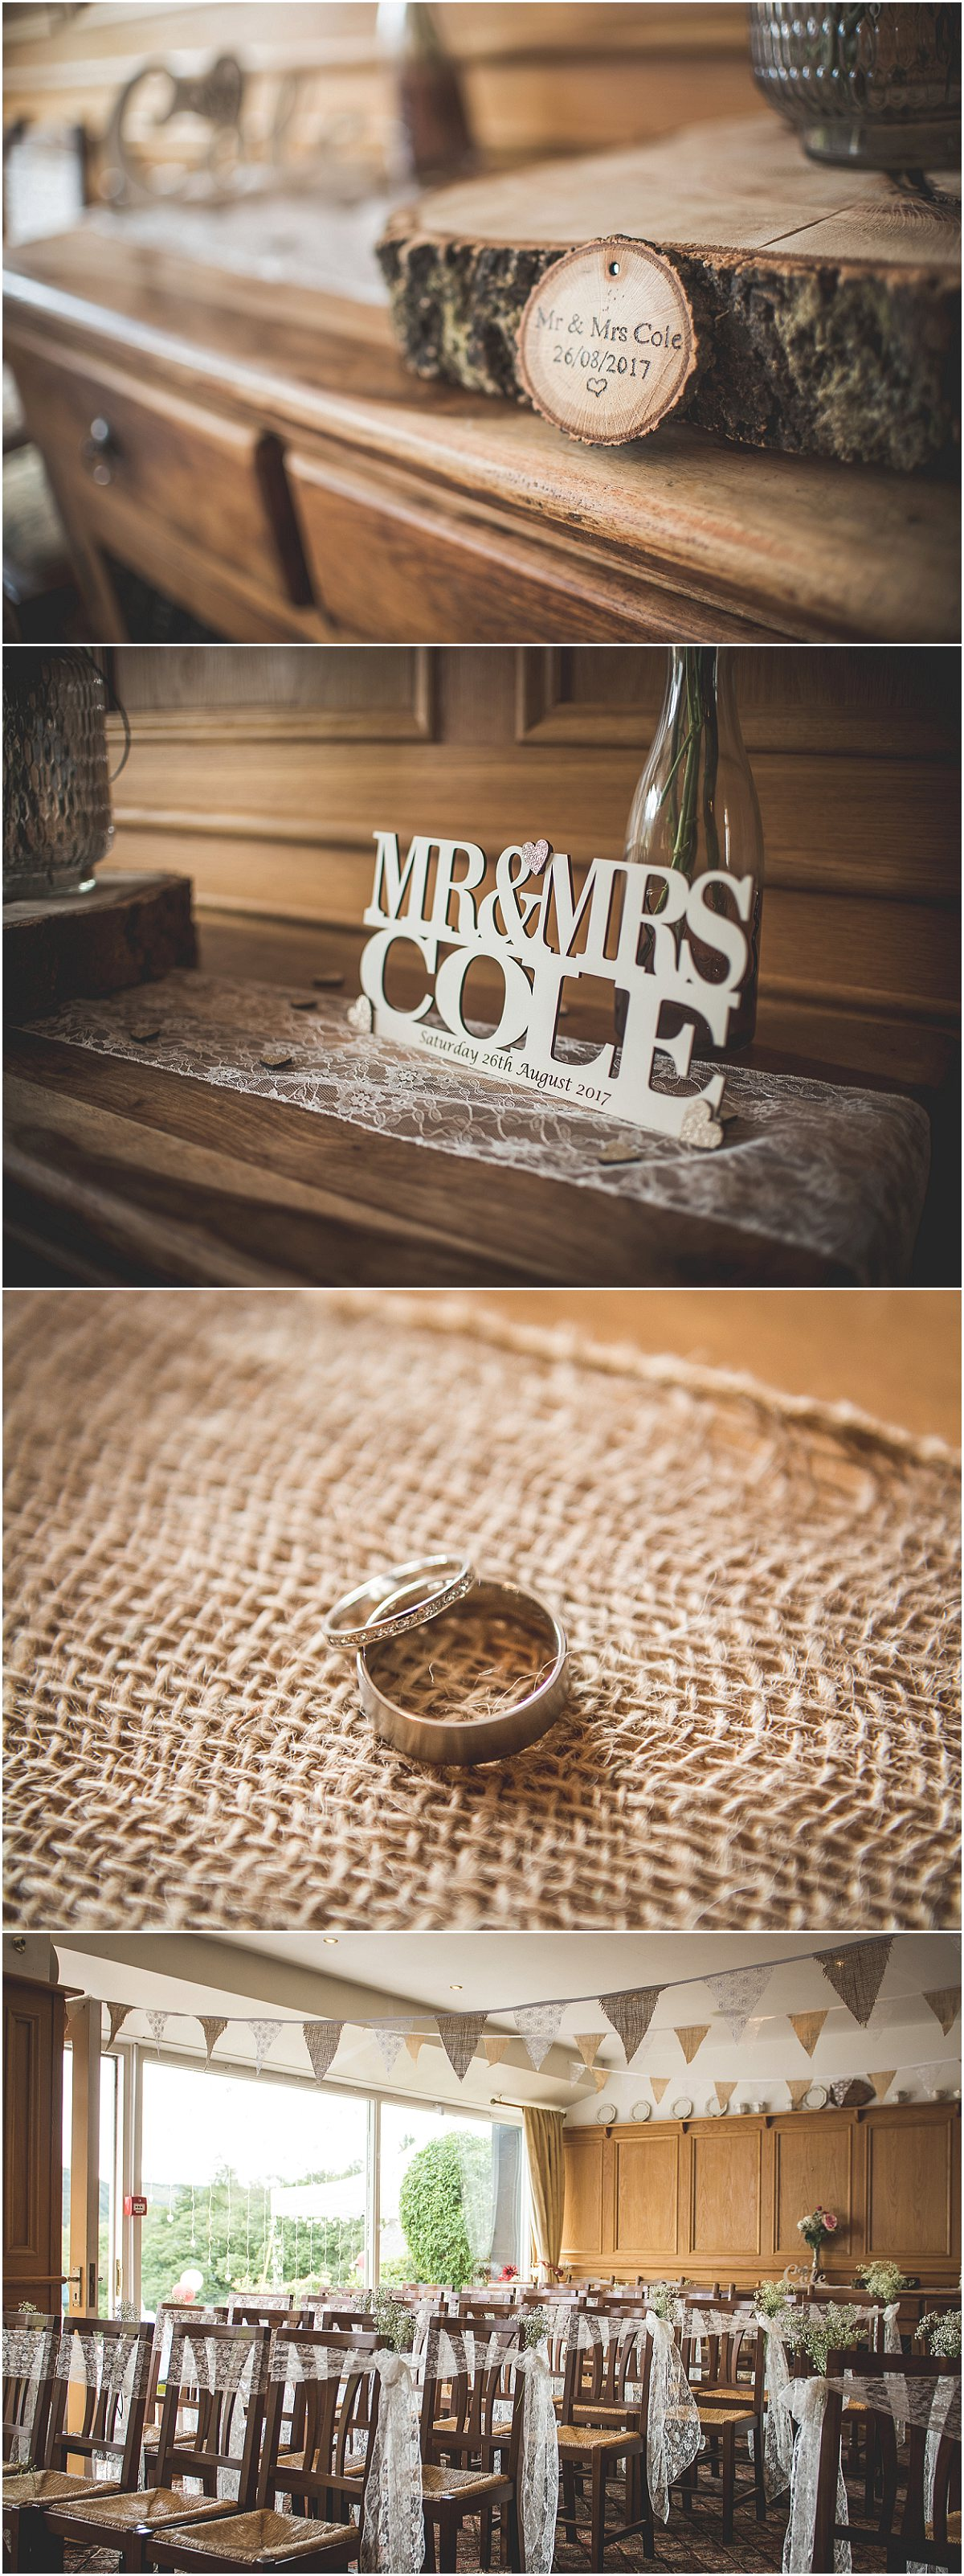 Wedding rings at Low Wood Hall Hotel, Wast Water Wedding Photography